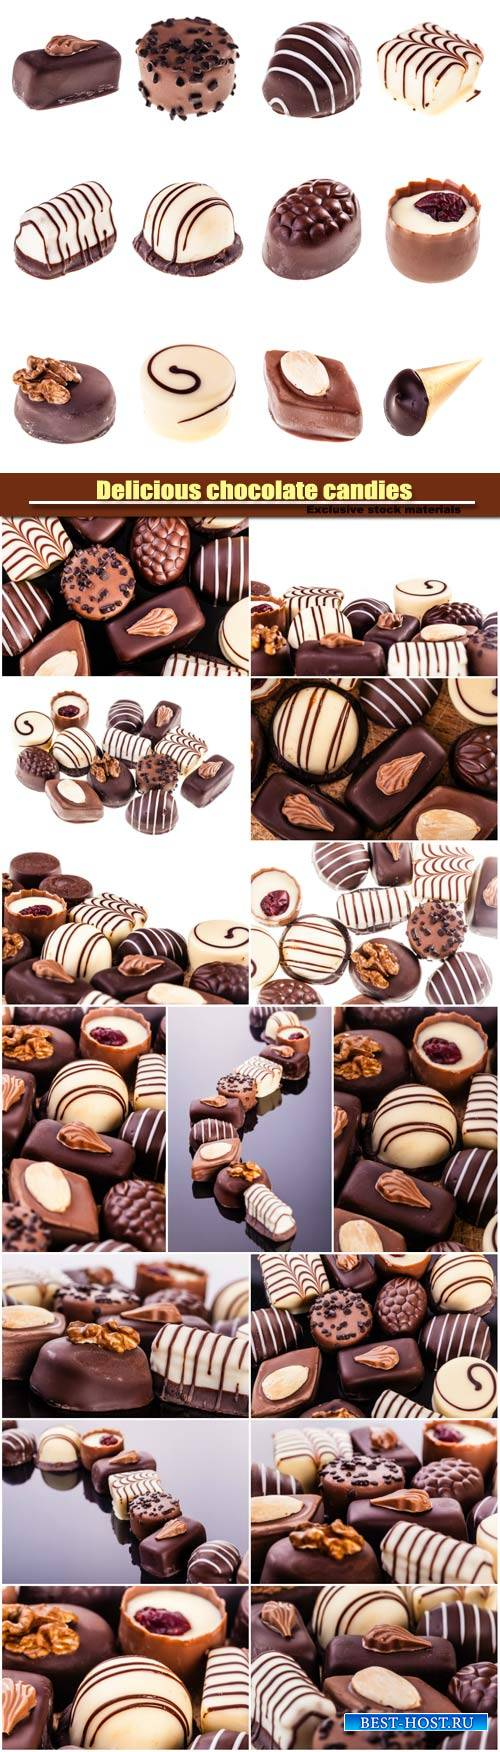 Delicious chocolate candies